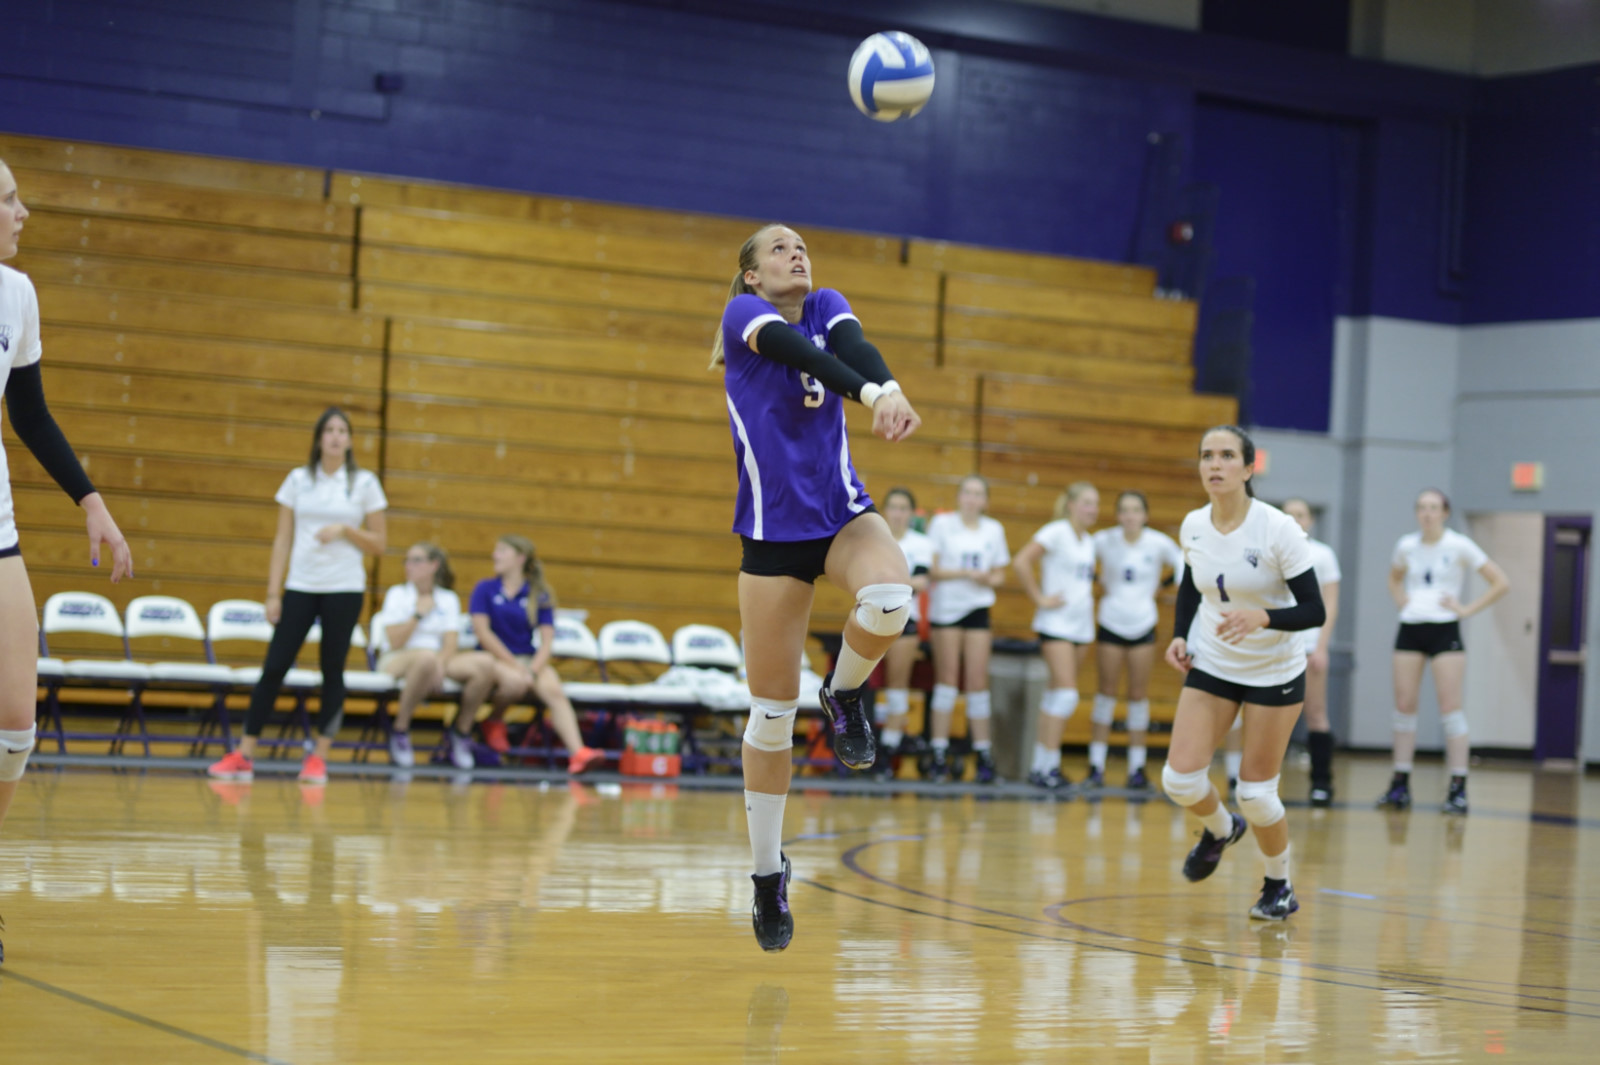 Volleyball Finishes With Weekend Split In Western New York After Loss At Daemen